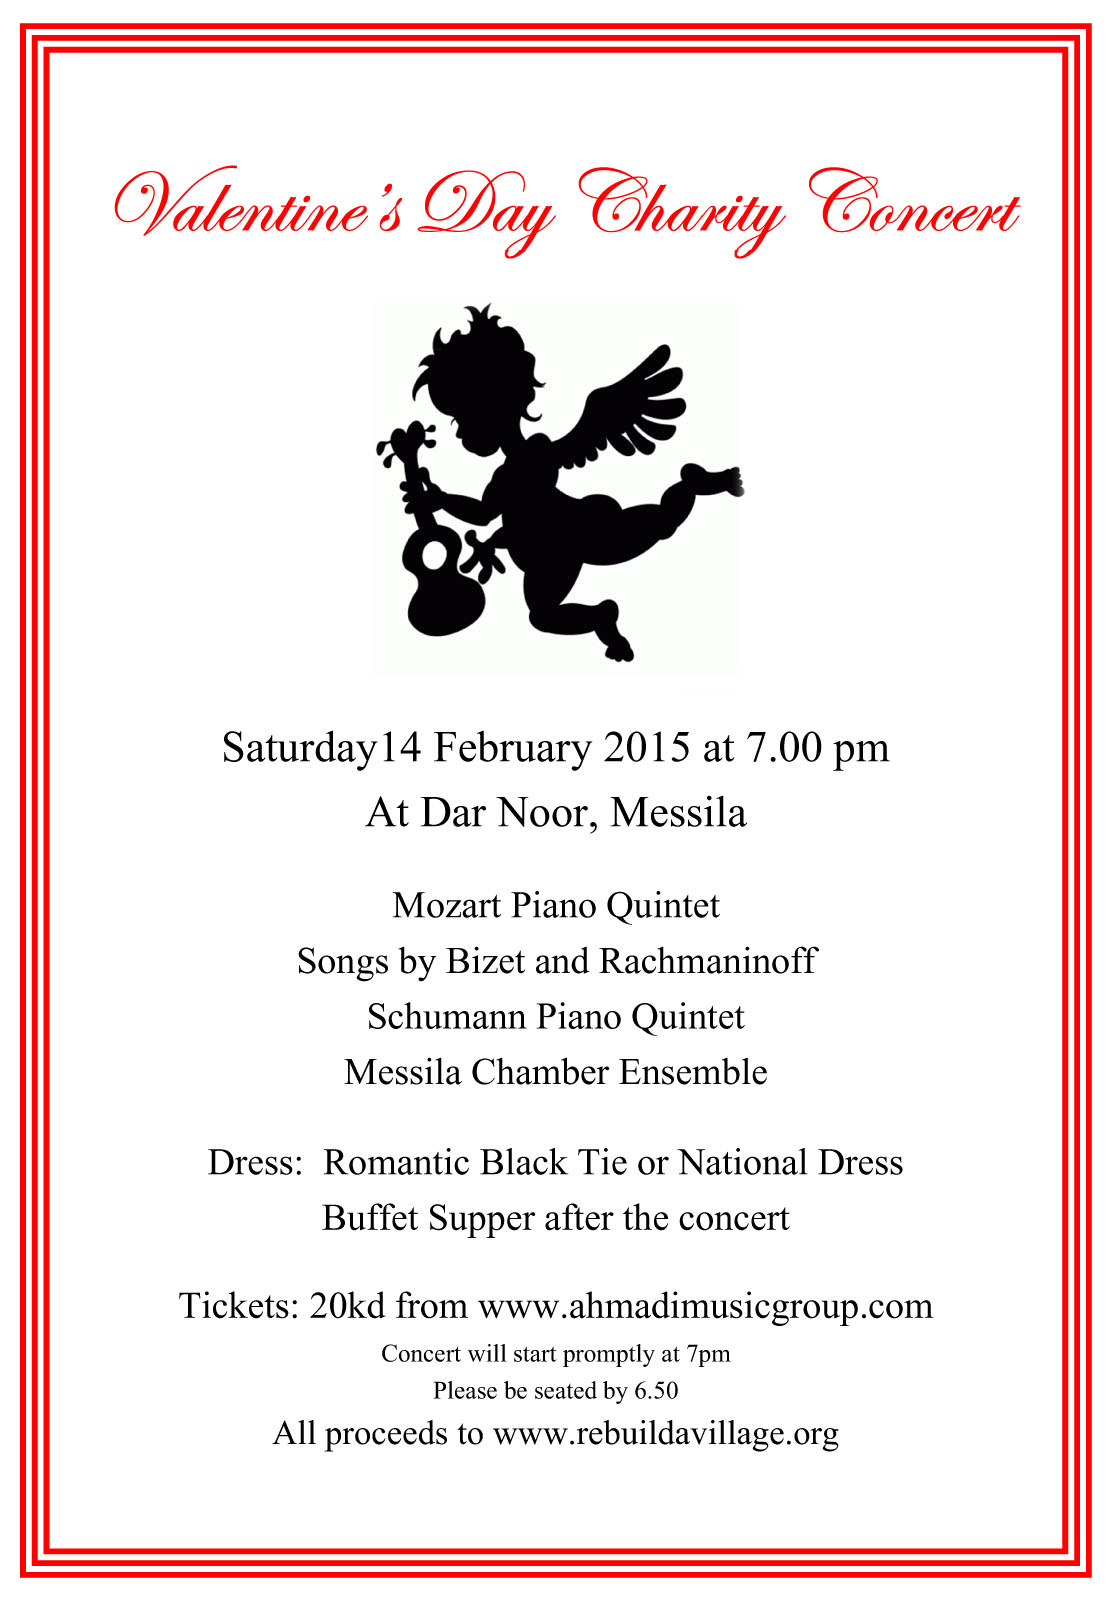 valentines day charity concert invitation - Valentines Day Concert